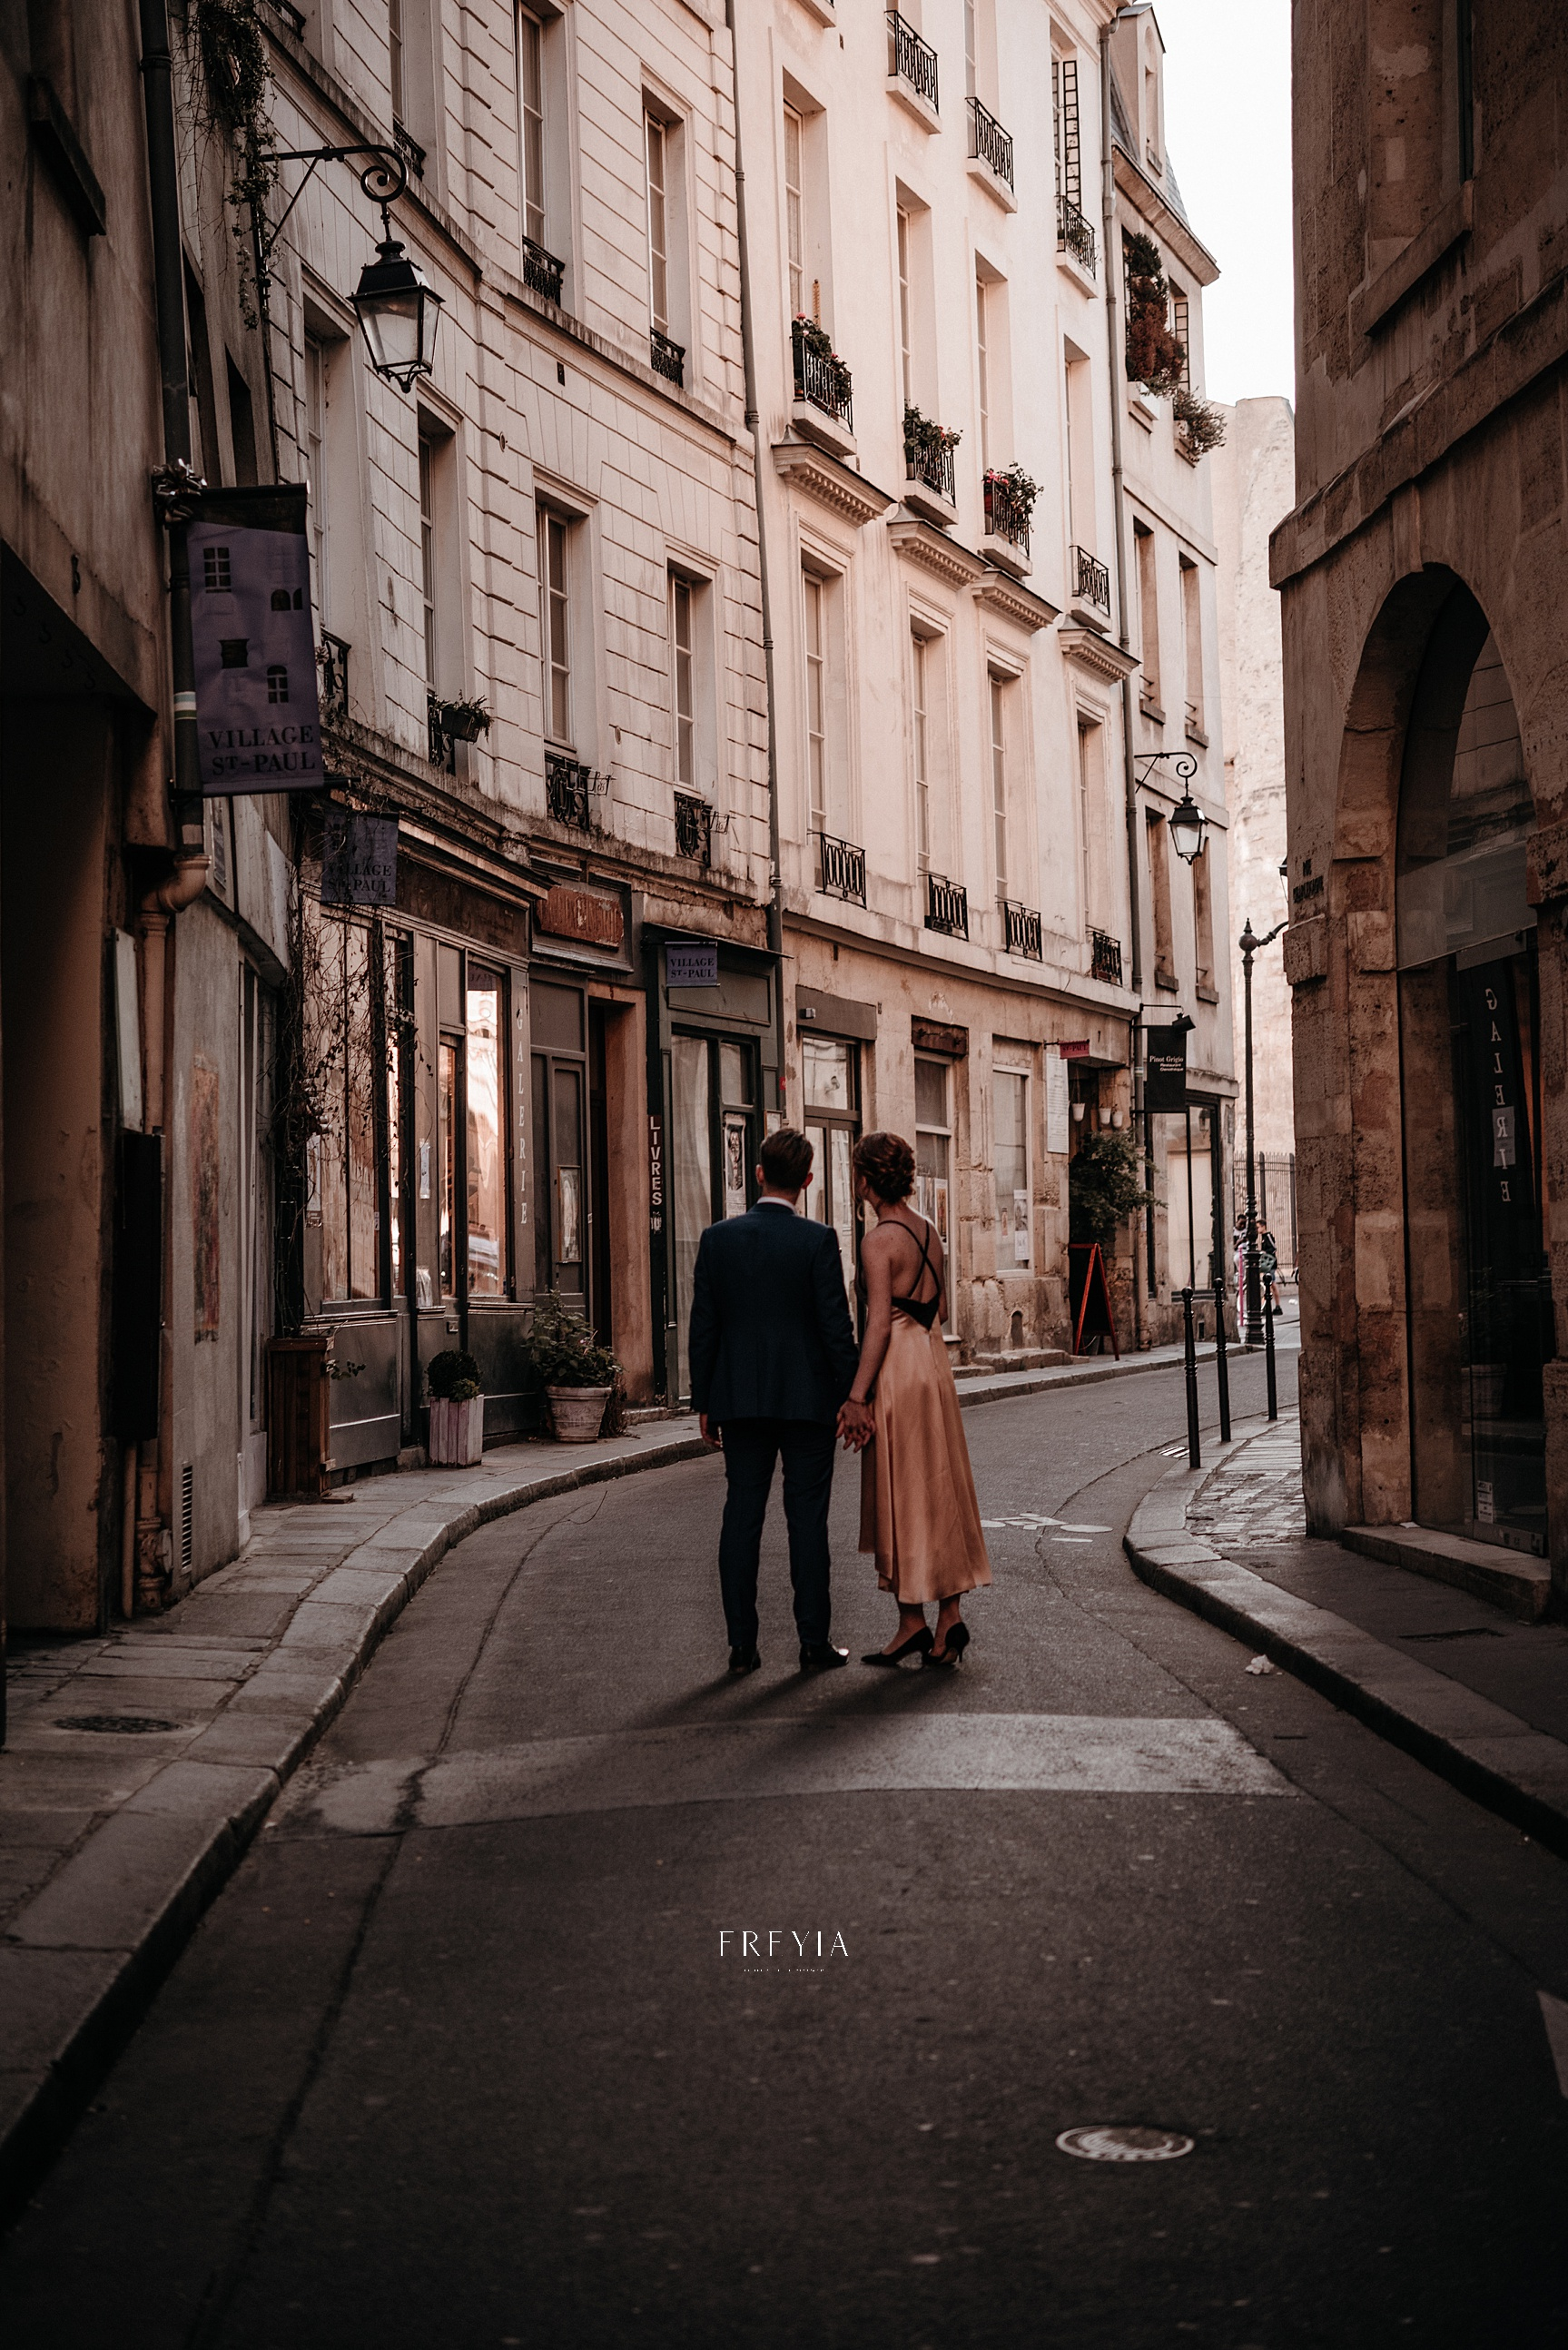 P + F |  mariage reportage alternatif moody intime vintage naturel boho boheme |  PHOTOGRAPHE mariage PARIS france destination  | FREYIA photography_-298.jpg